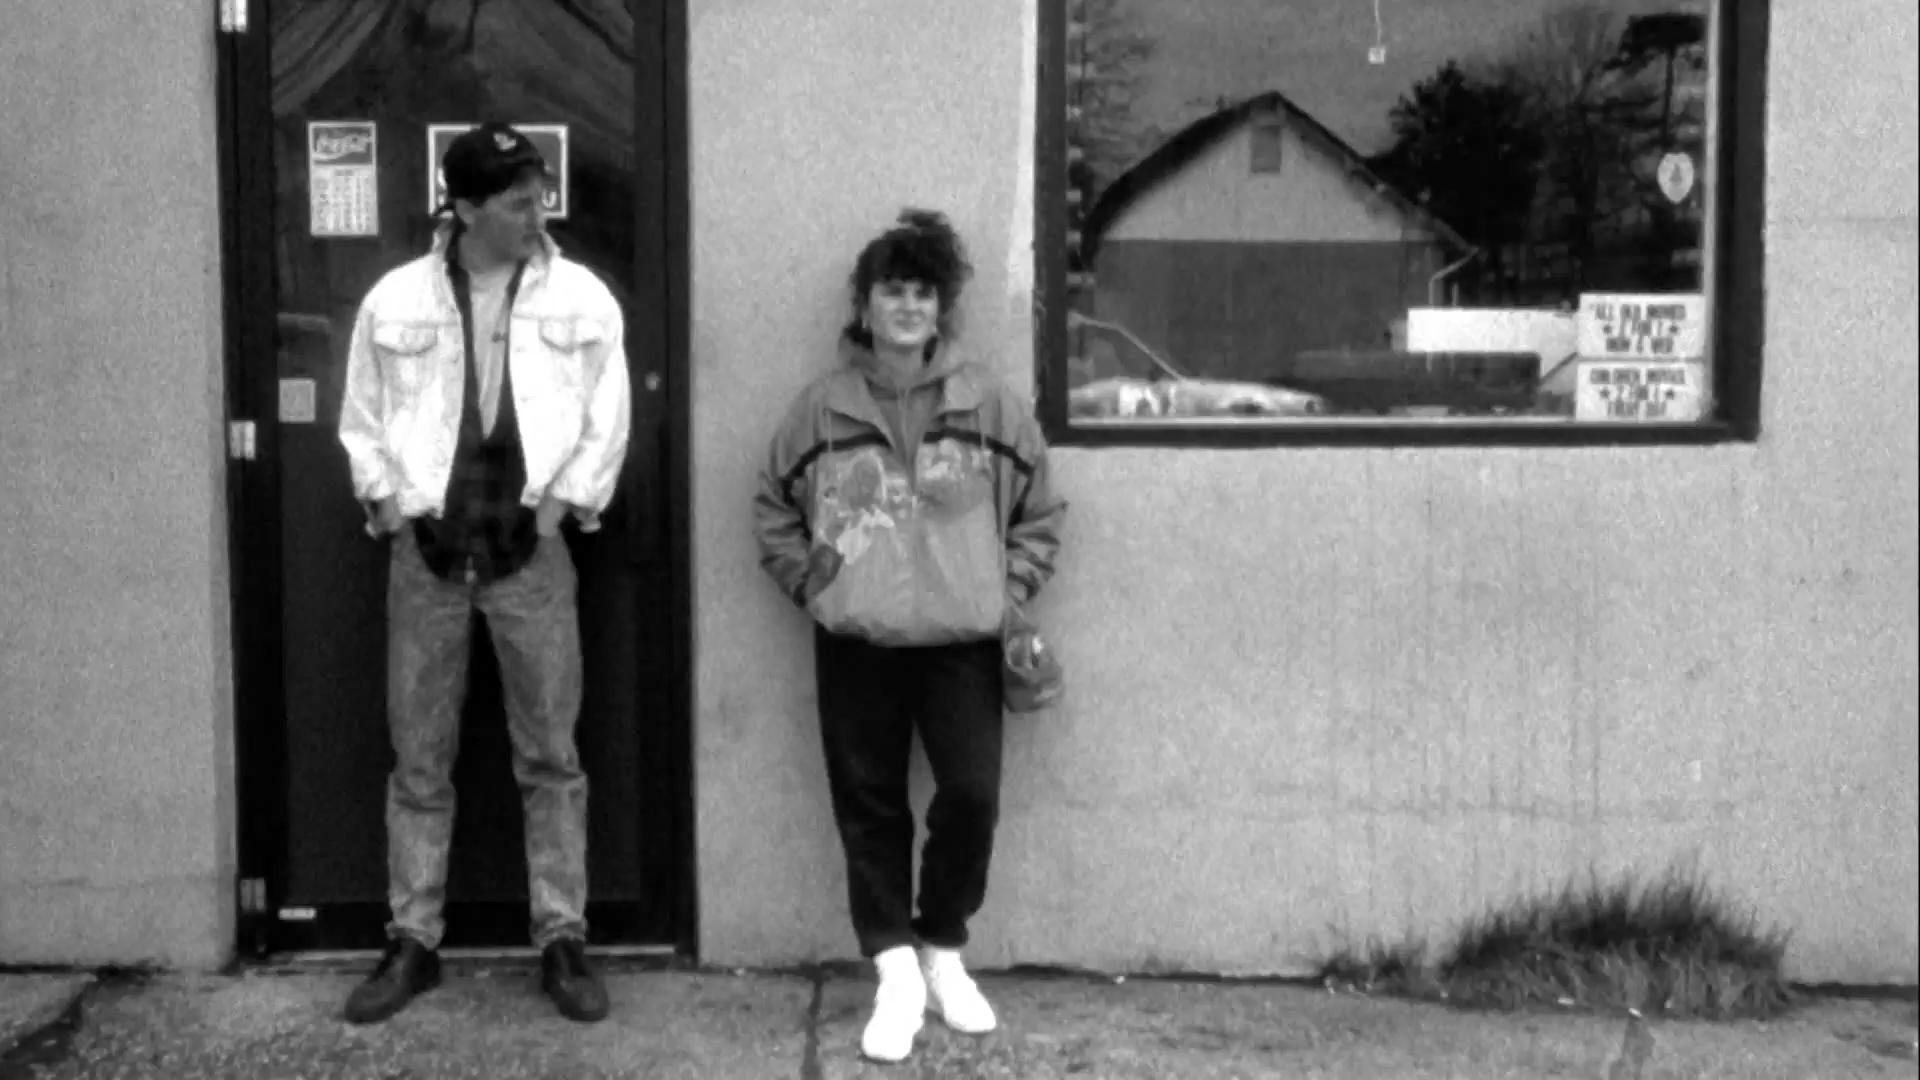 Clerks - VIdeo Rental Blues